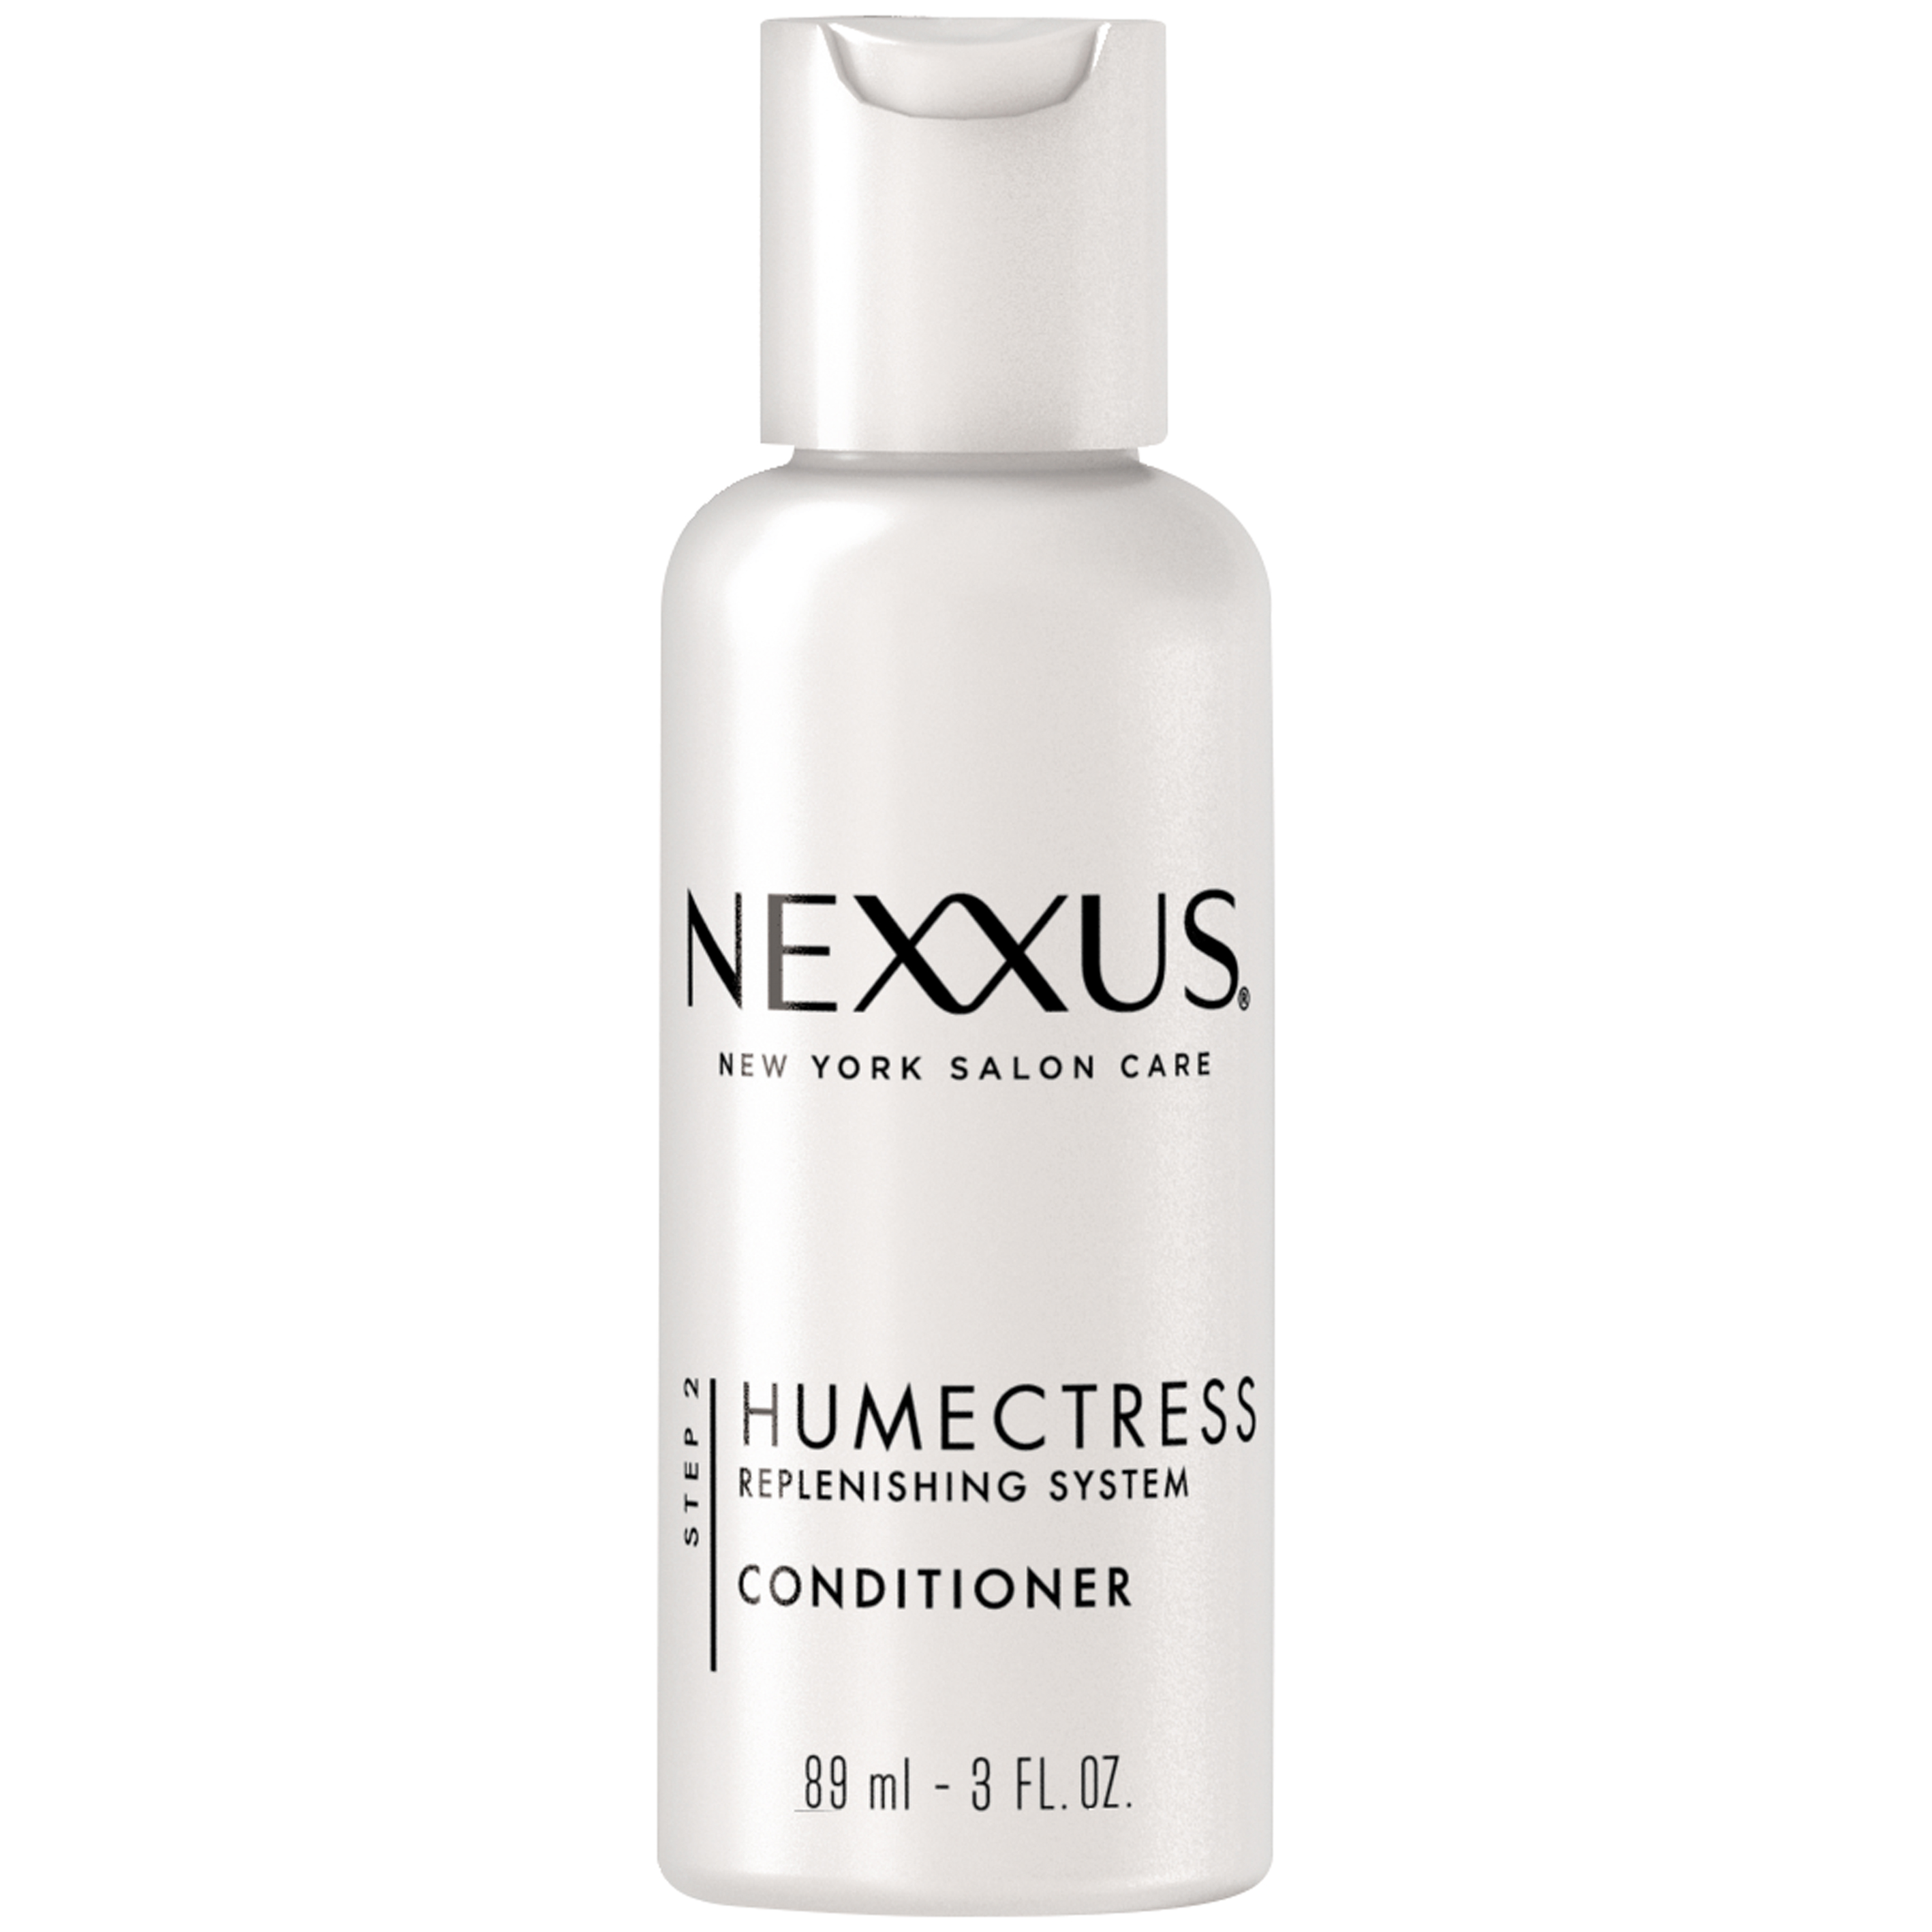 Nexxus Humectress for Normal to Dry Hair Moisture Conditioner, Travel Size, 3 oz